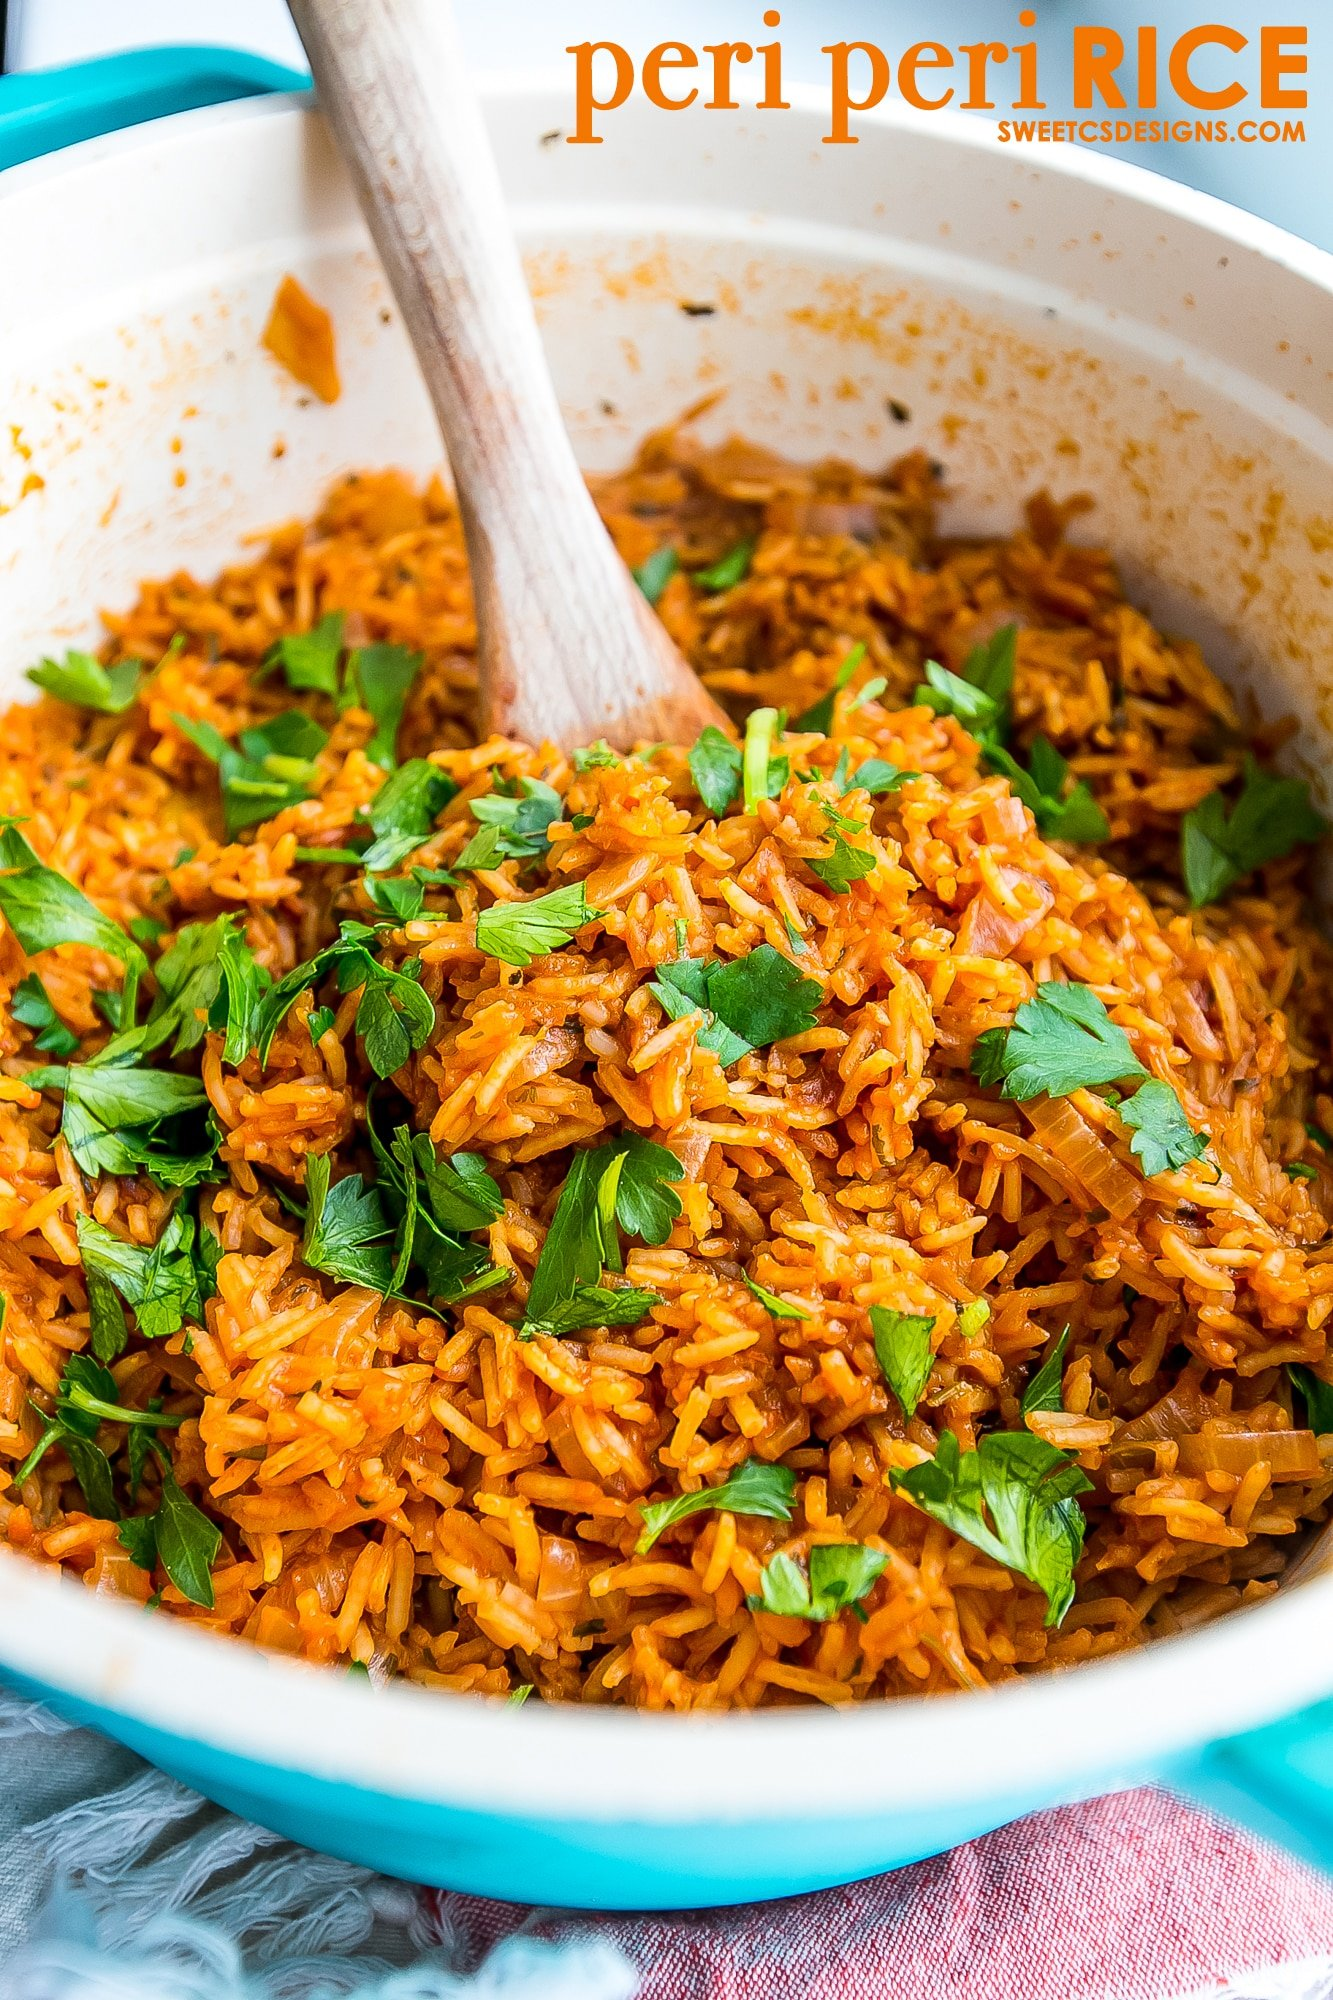 peri peri rice- so delicious! spicy and full of flavor.